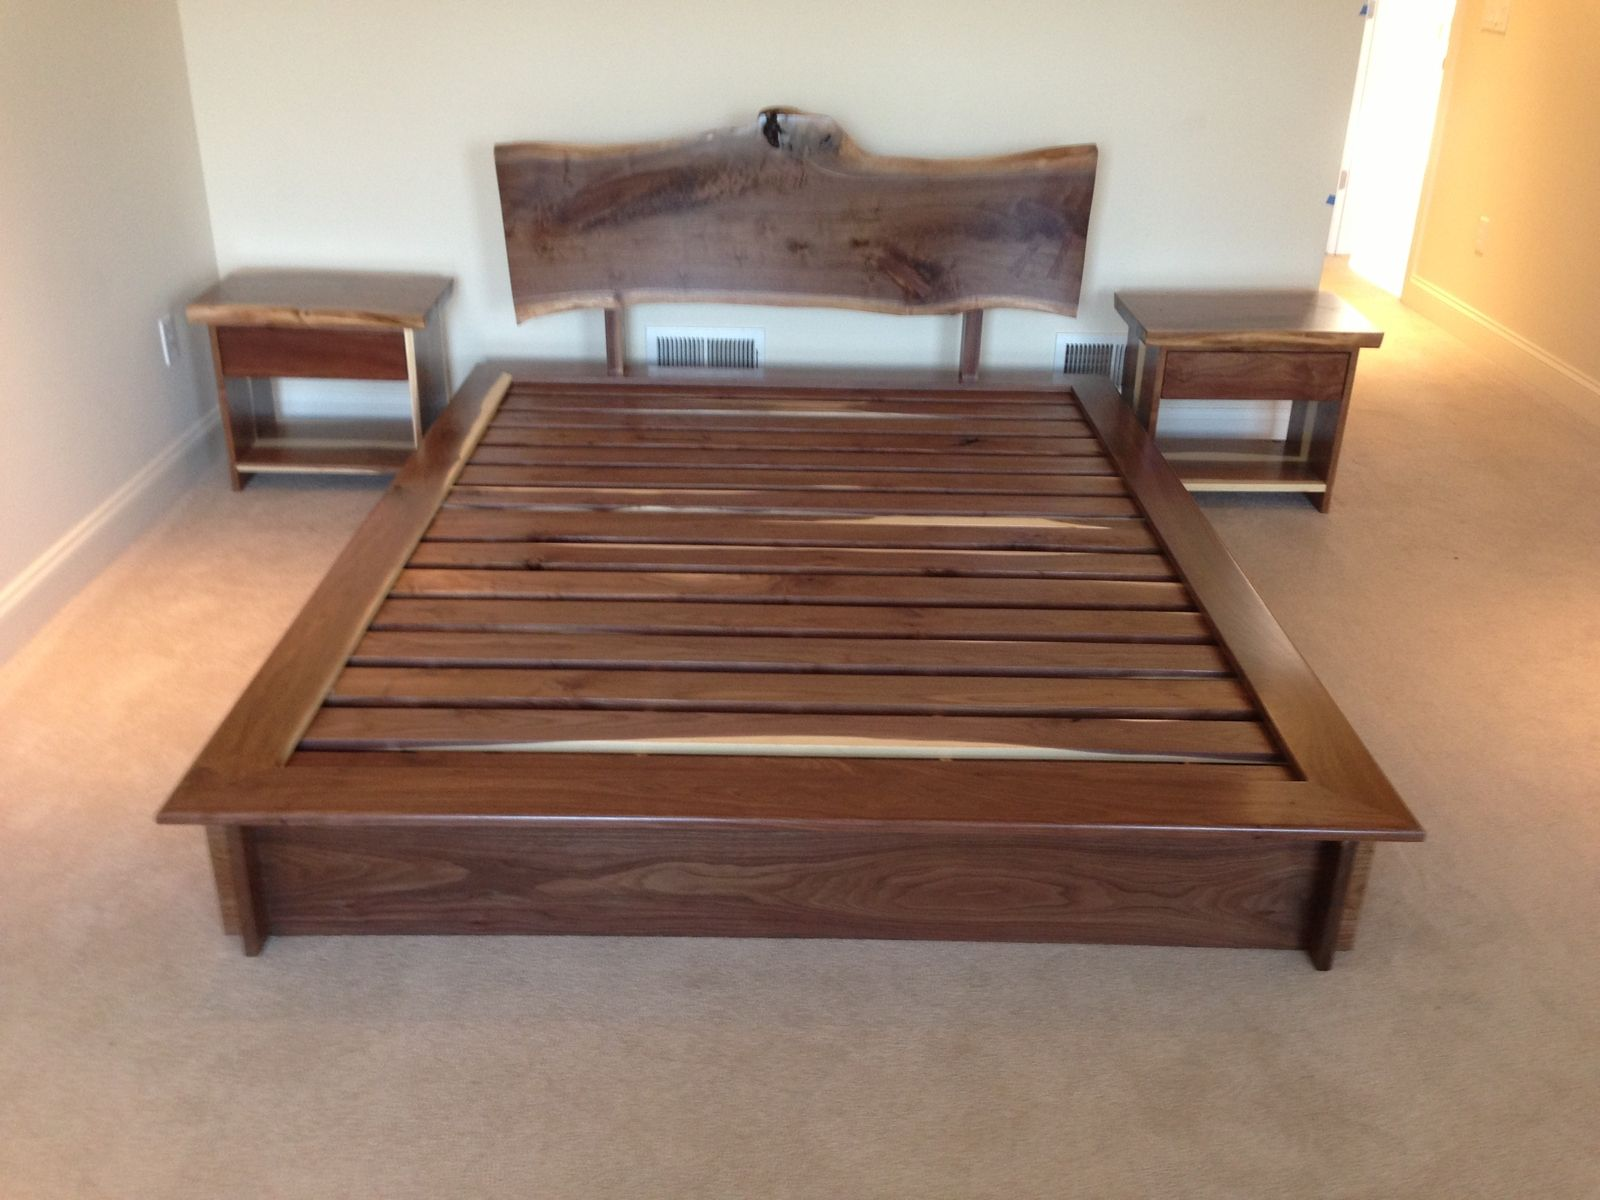 Ebern Designs Nageshwar Platform Bed Reviews: Handmade Queen Bed And Matching Night Stands By Saw Tooth